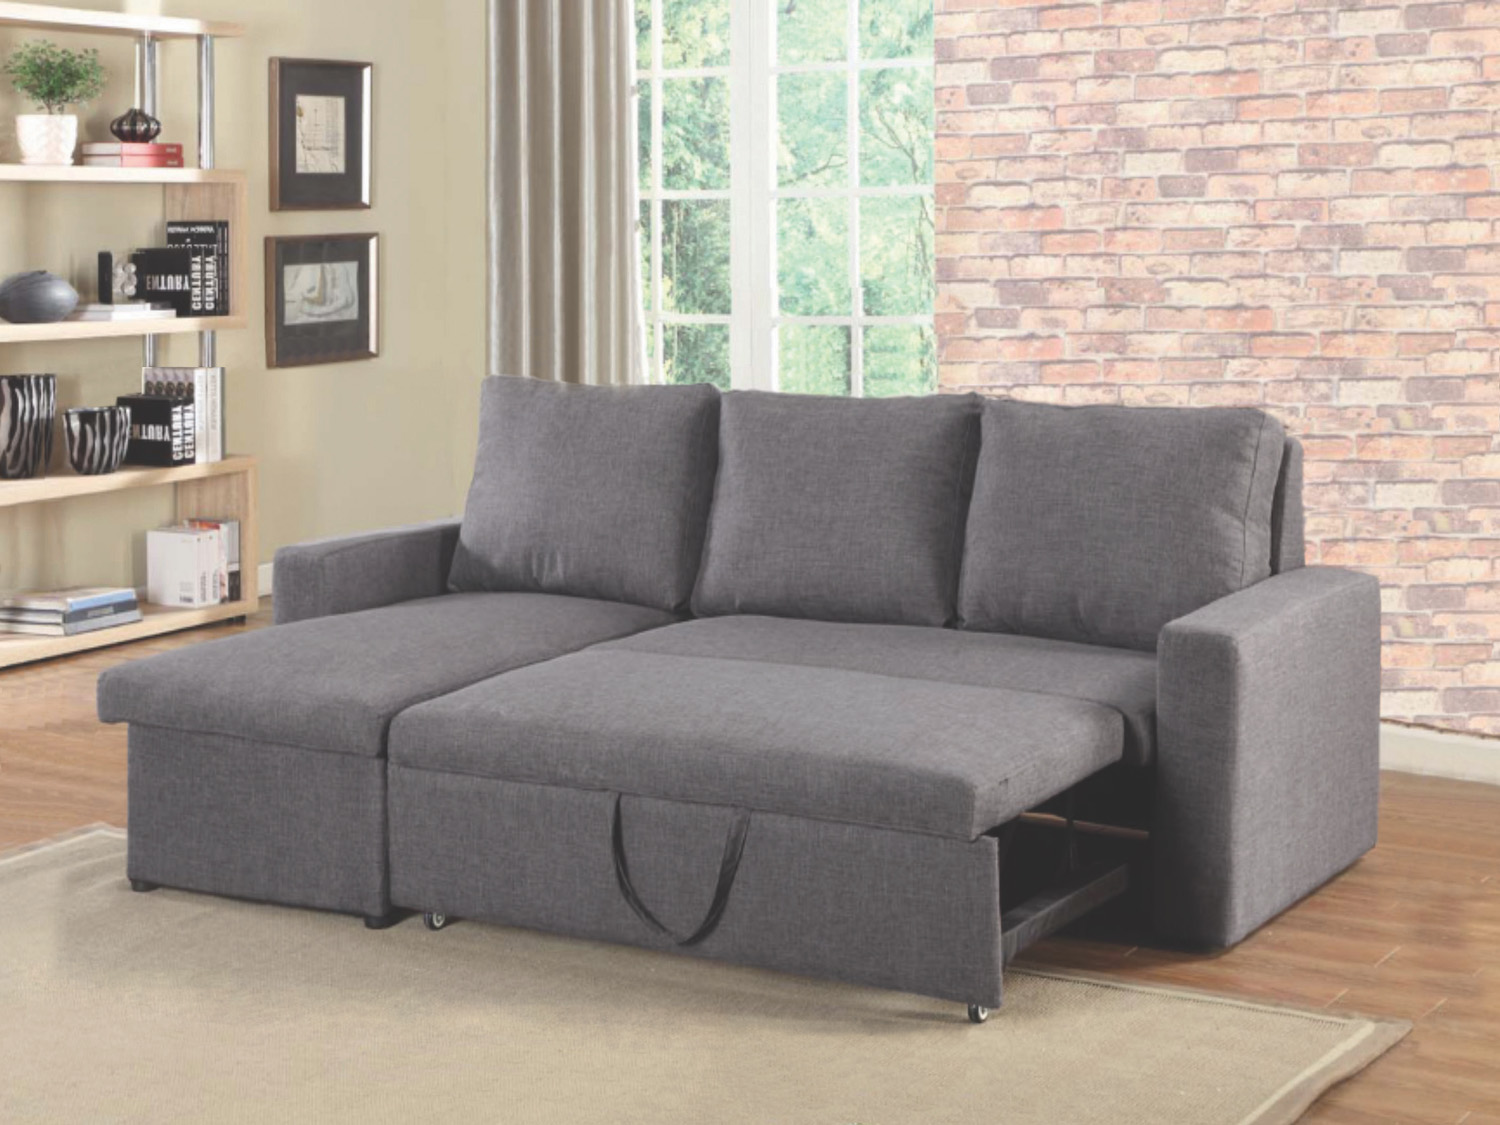 IF9000, IF-9000, Sofa Bed/Klik Klak/Futons, IF9000 from IFDC by Midha Furniture serving Brampton, Mississauga, Etobicoke, Toronto, Scraborough, Caledon, Cambridge, Oakville, Markham, Ajax, Pickering, Oshawa, Richmondhill, Kitchener, Hamilton, Cambridge, Waterloo and GTA area